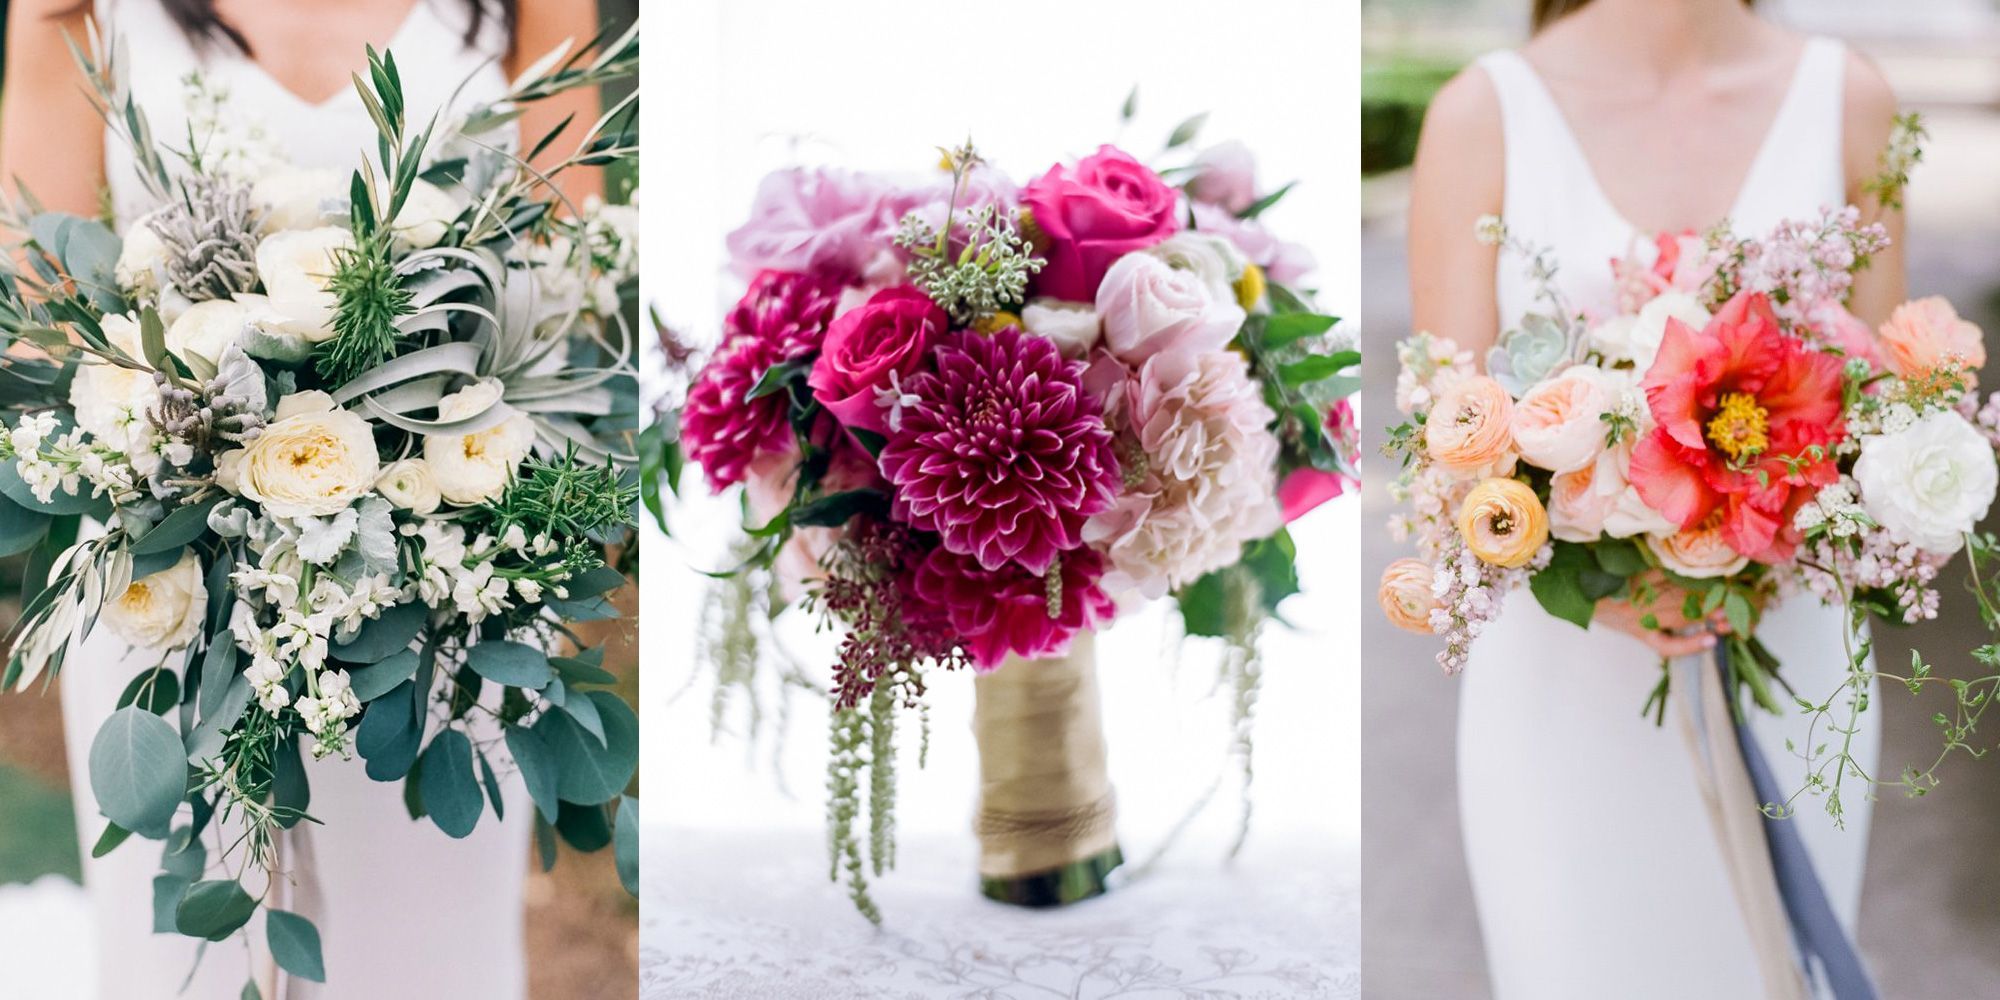 ideas for you to choose lilies wedding bouquet 12 1 - Choose Artificial Hand-tied Wedding Bouquet for the Wedding